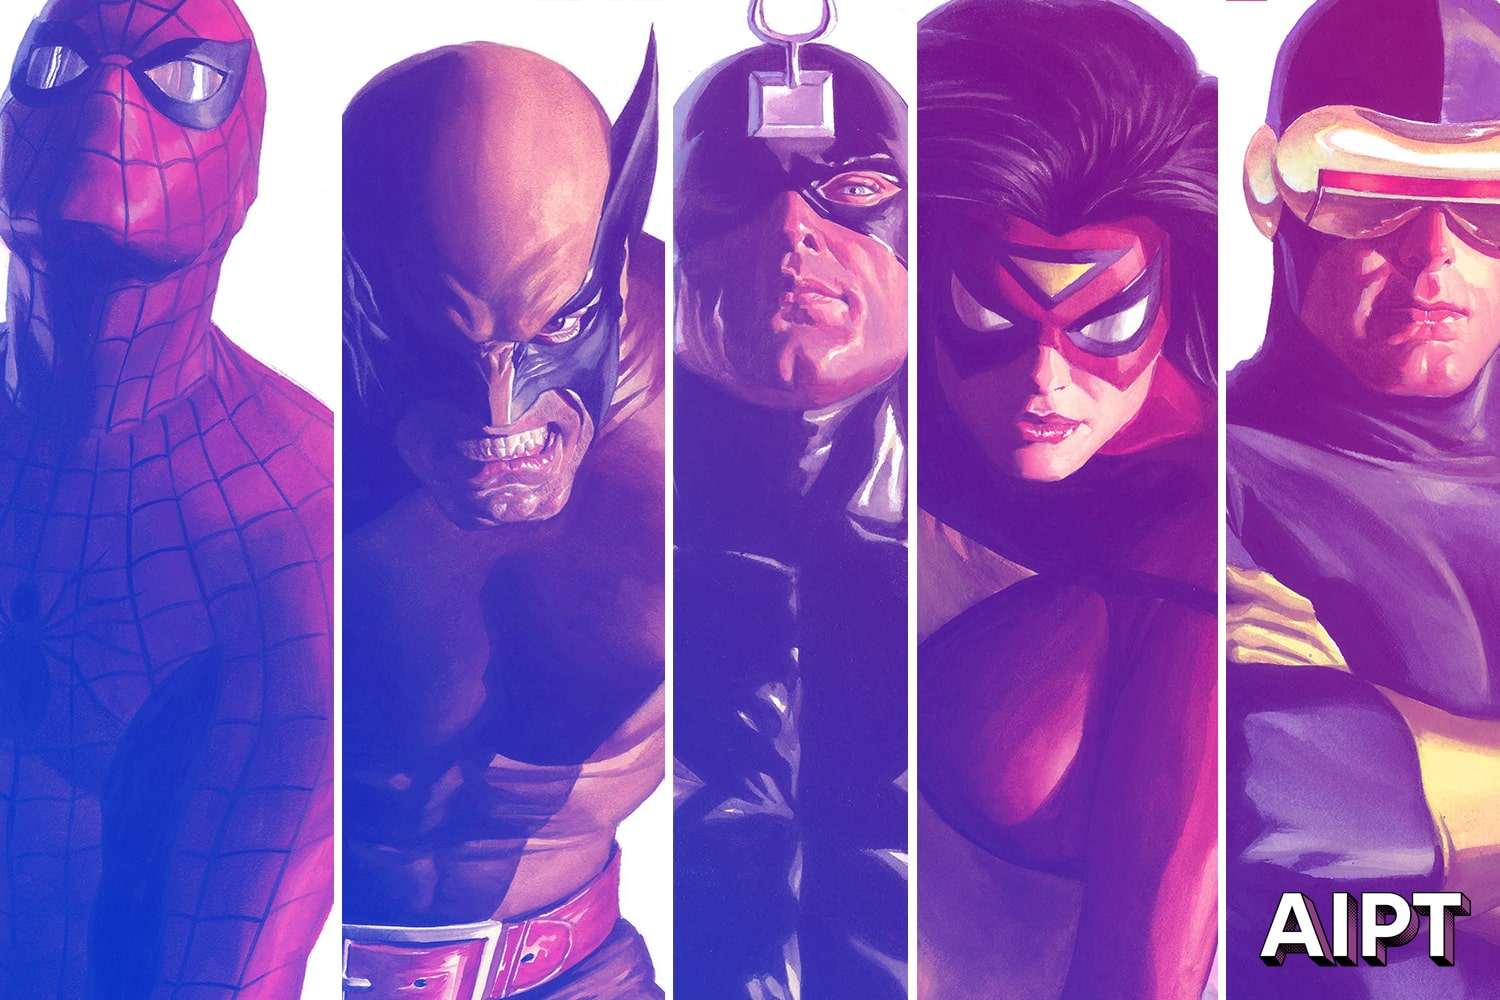 Spider-Man, Thor, Wolverine, and more featured in stunning covers by artist Alex Ross.